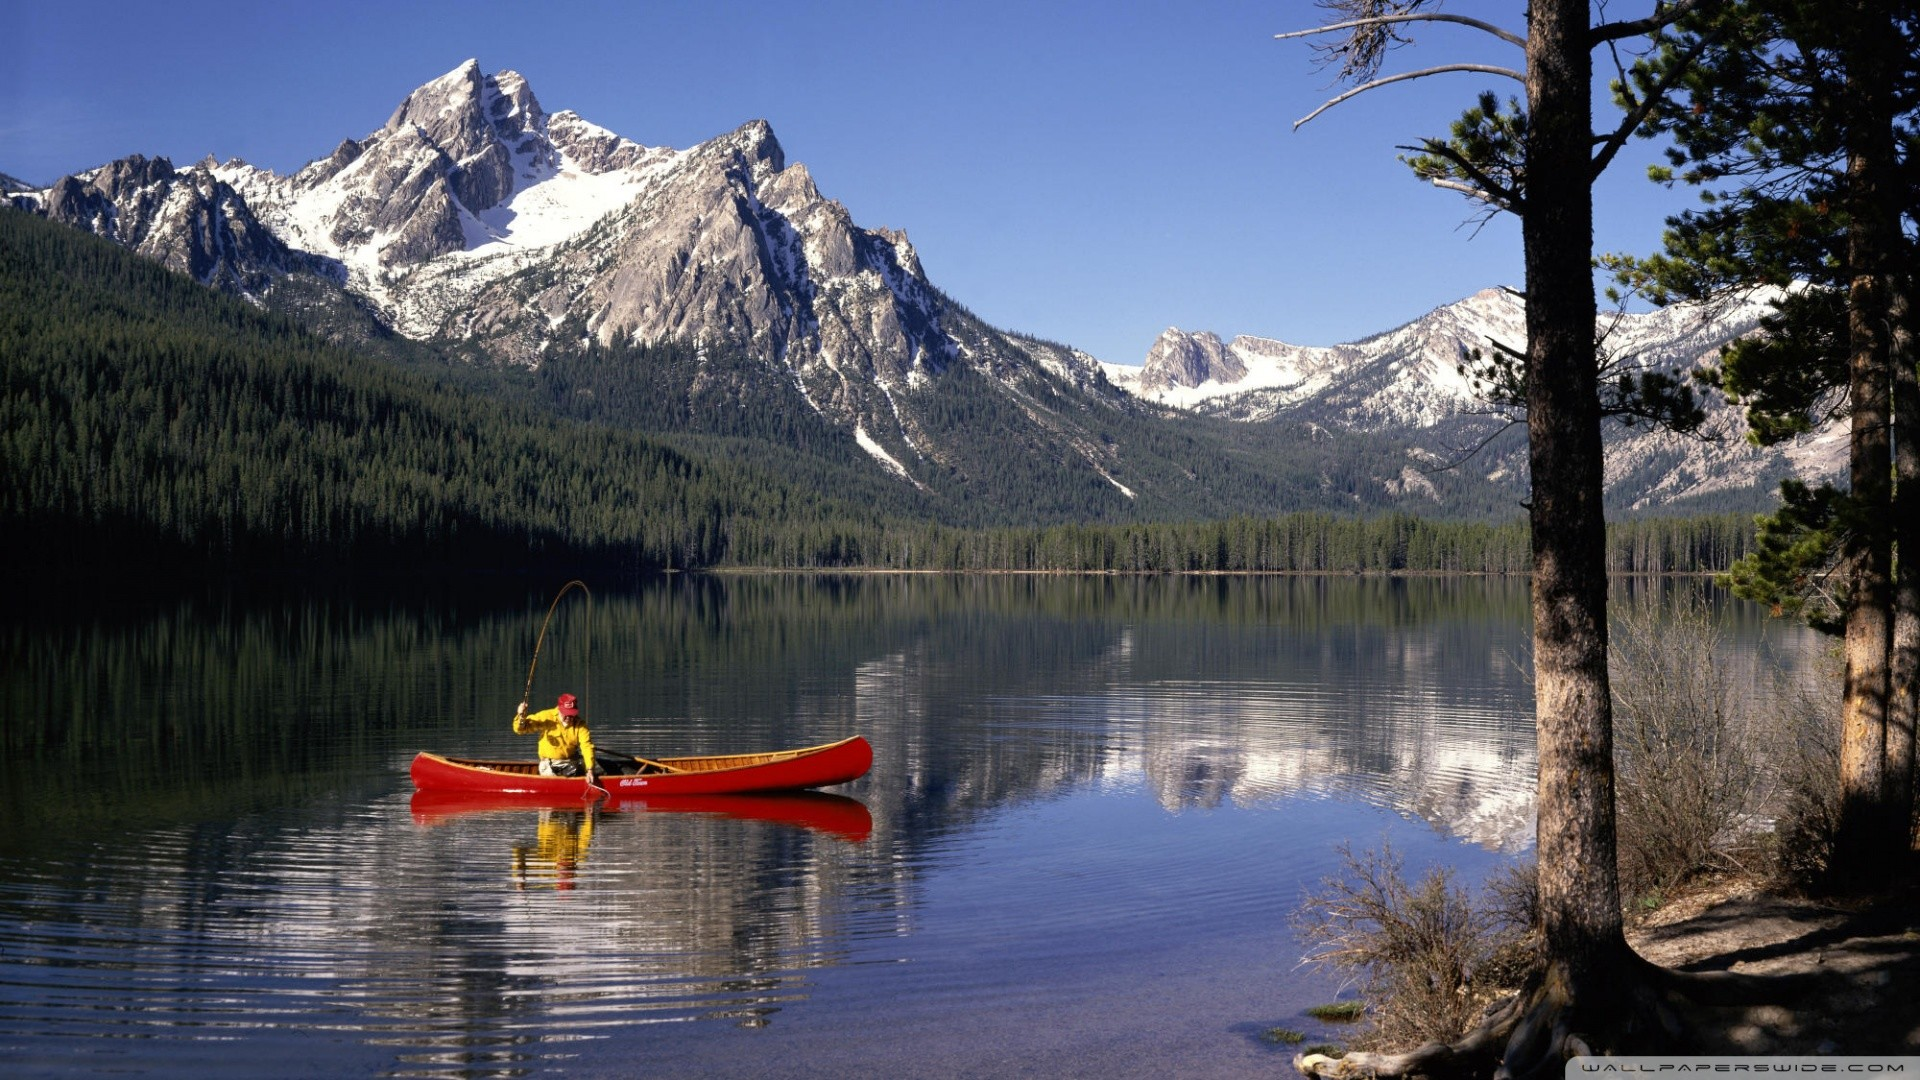 1920x1200 Related Wallpapers from Fly Fishing Wallpaper. Lake Wallpaper